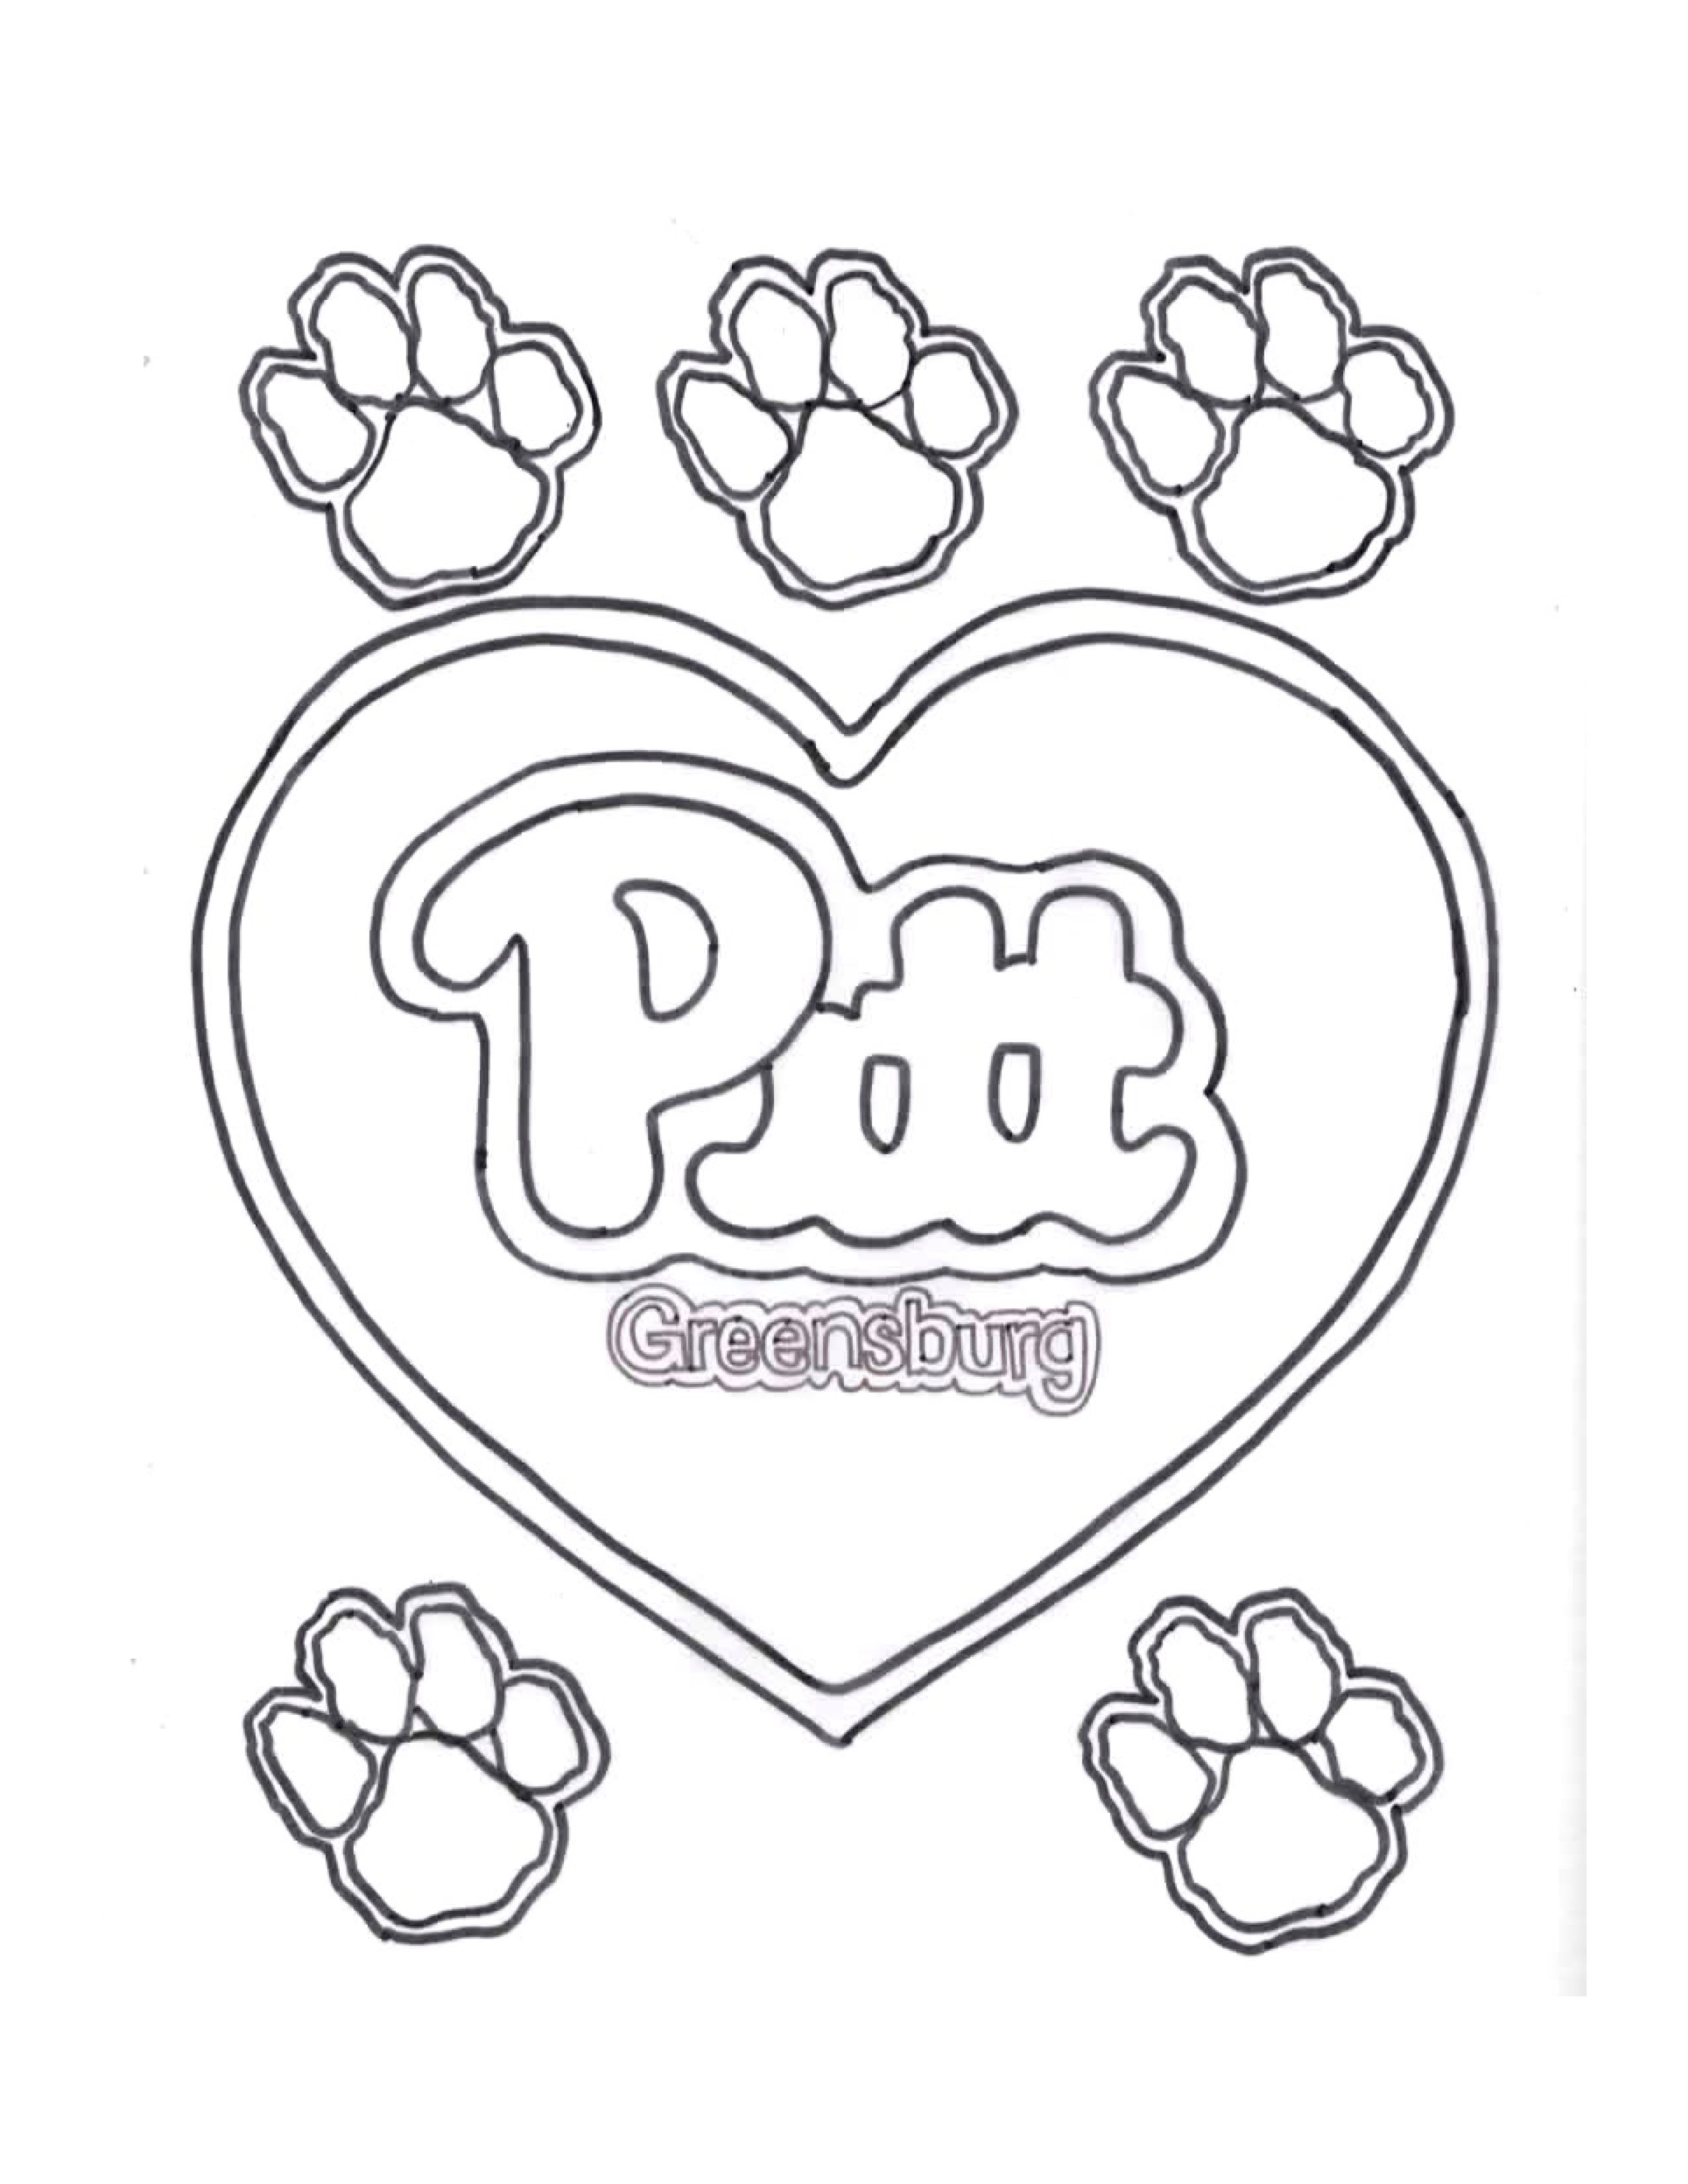 Pitt Greensburg Coloring Pages University Of Pittsburgh Greensburg University Of Pittsburgh